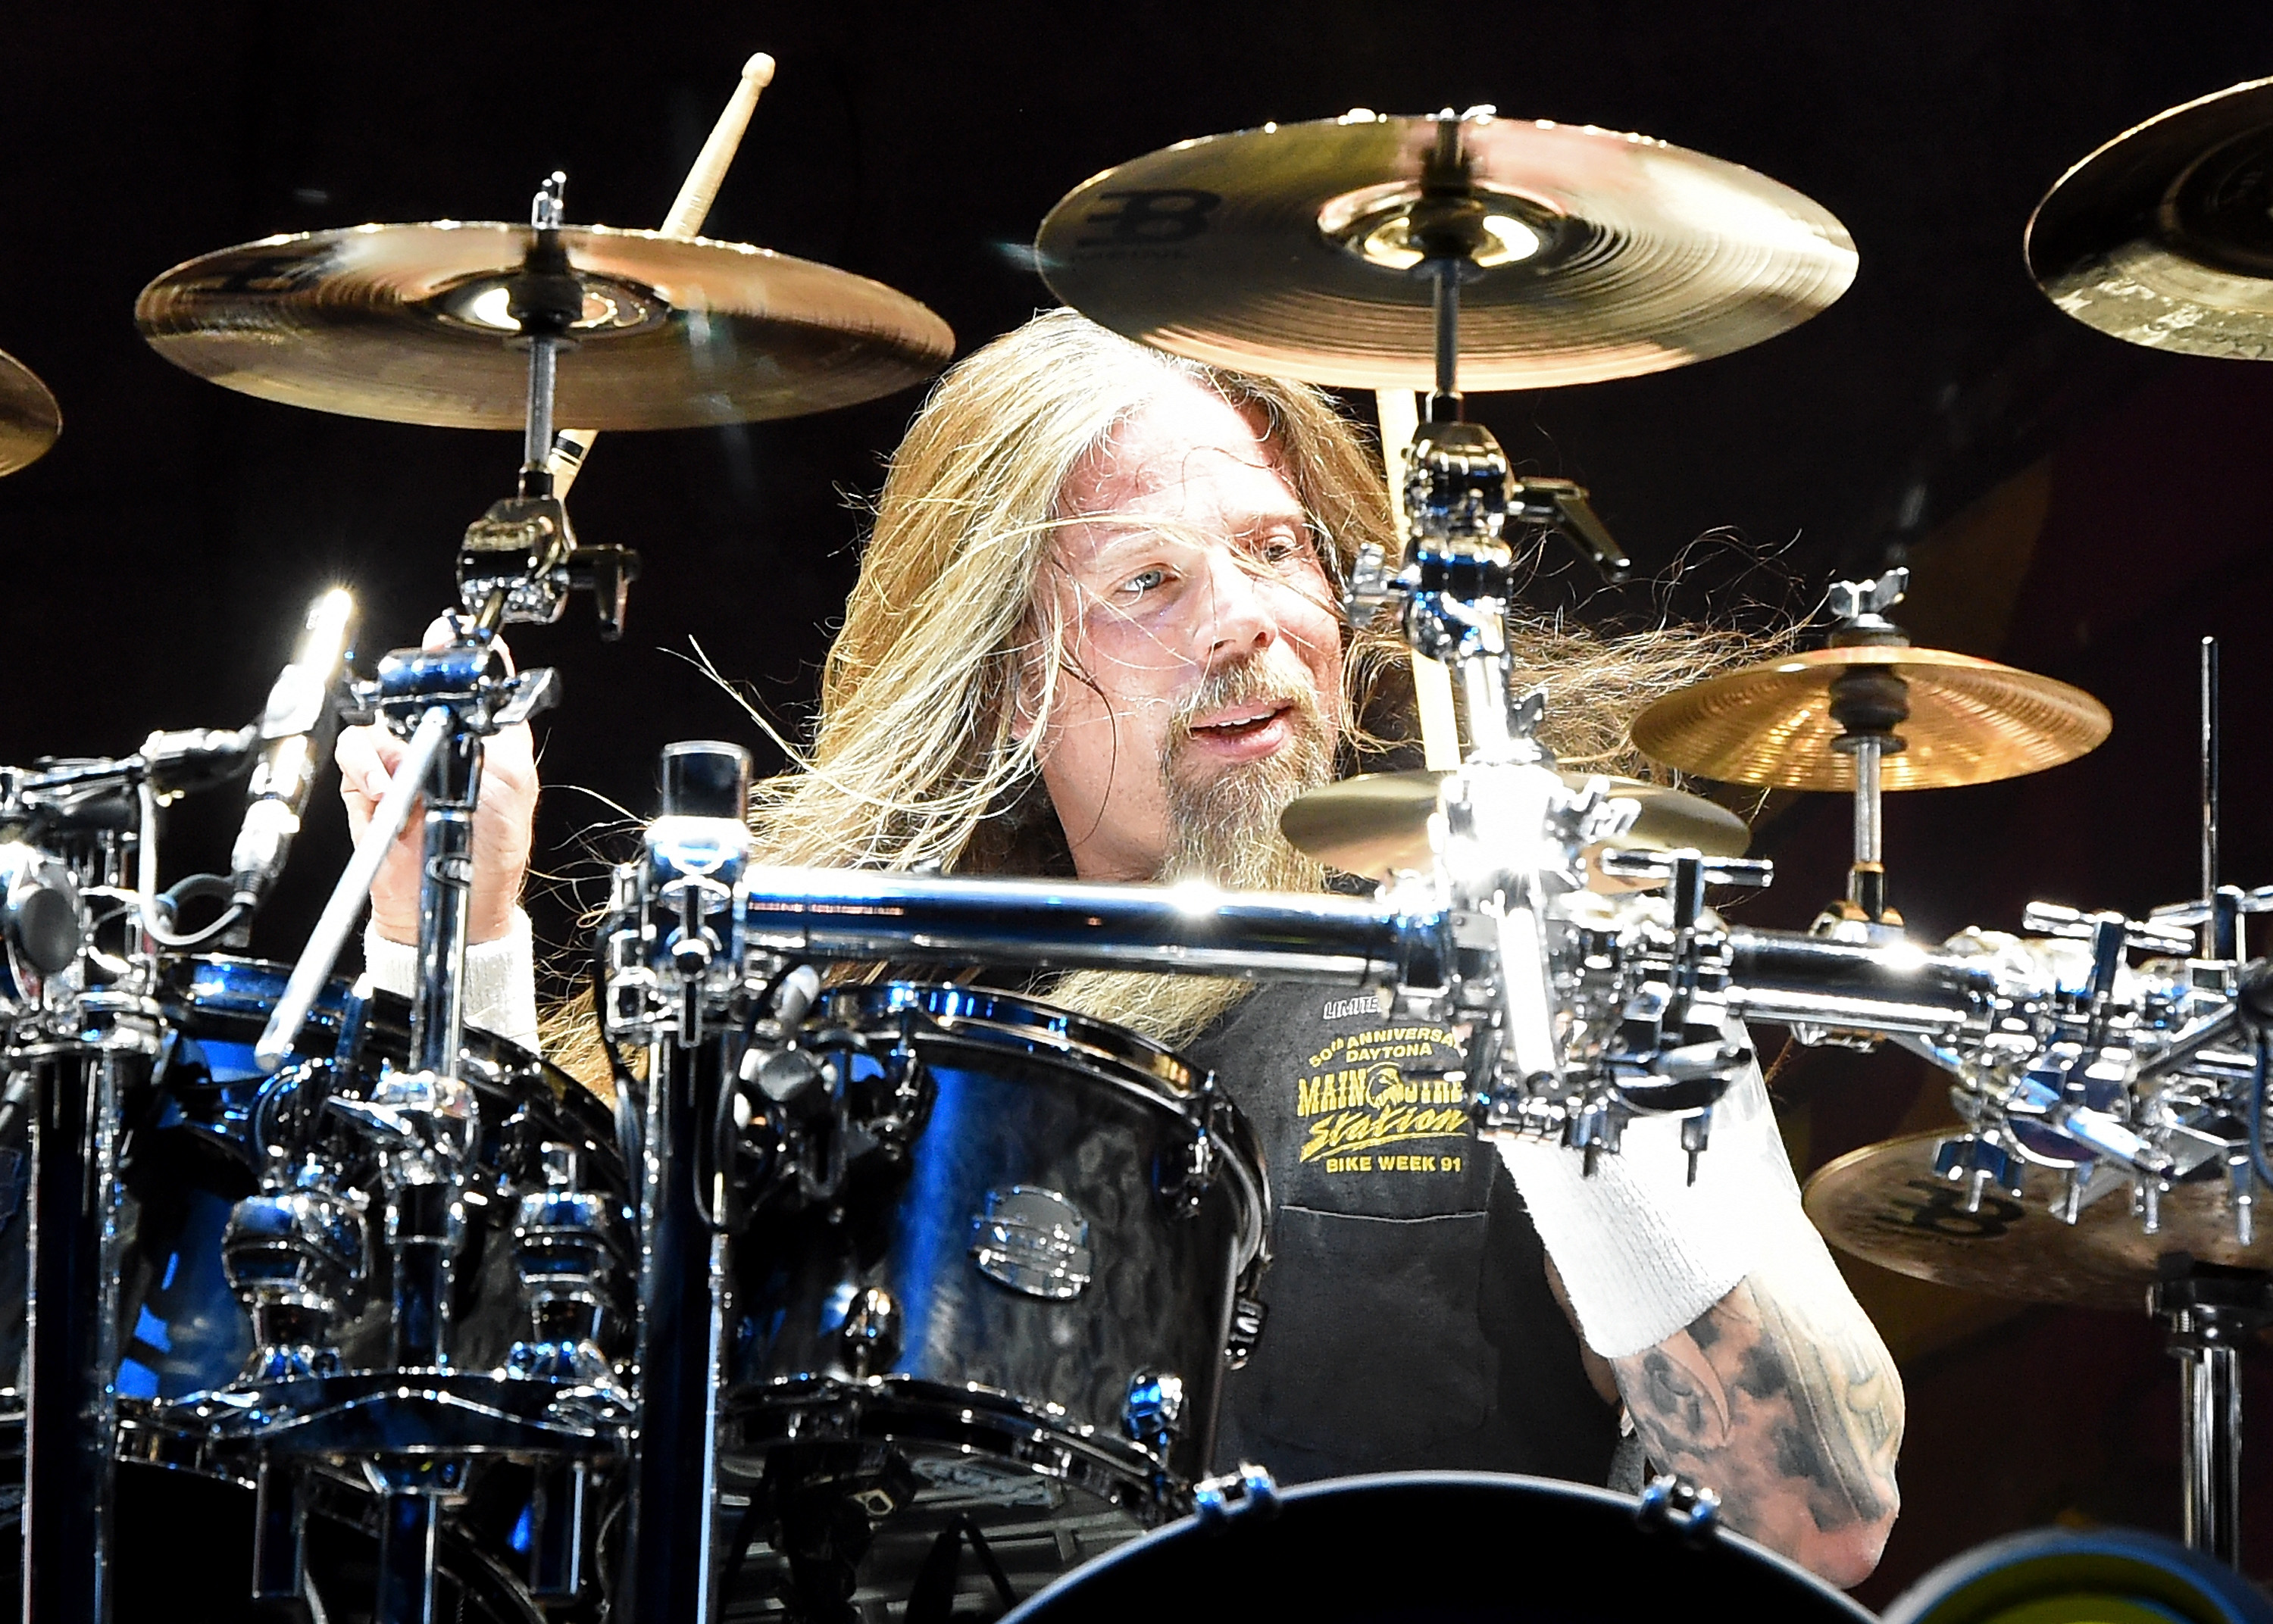 Drummer Chris Adler of Lamb of God performs at the Las Vegas Village on August 28, 2015, in Las Vegas, Nevada. (Getty Images)